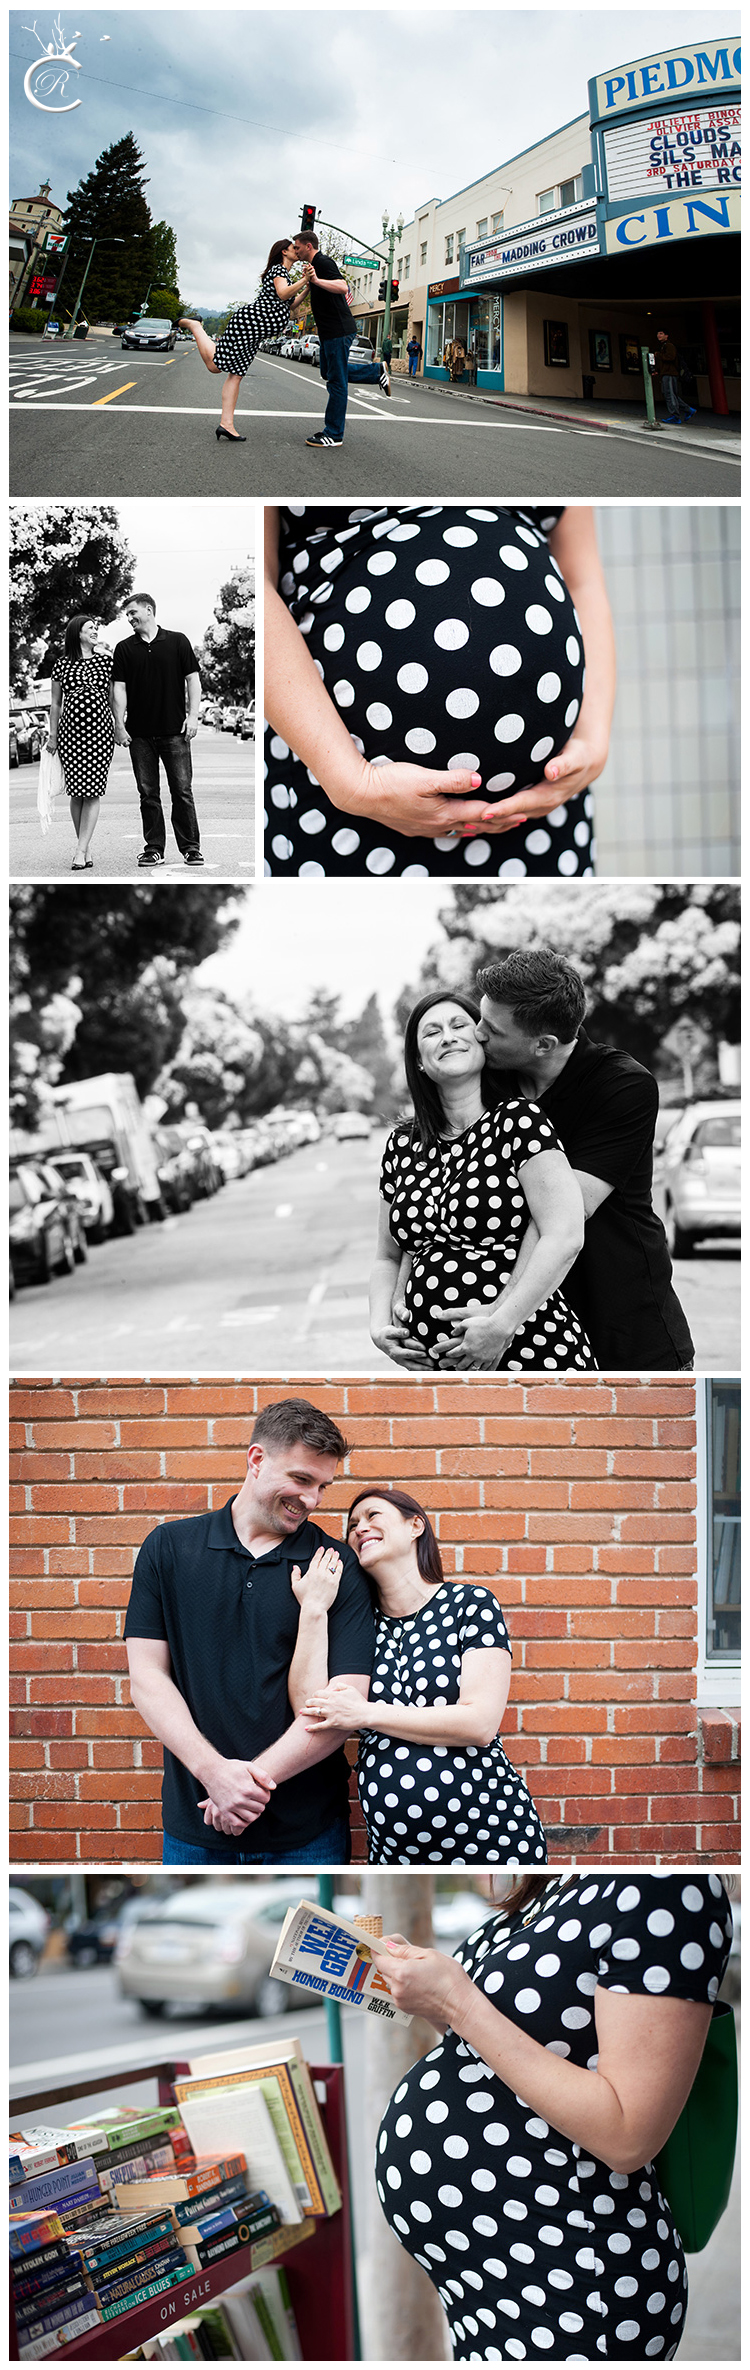 Maternity photography session on Piedmont Avenue in Oakland, Ca